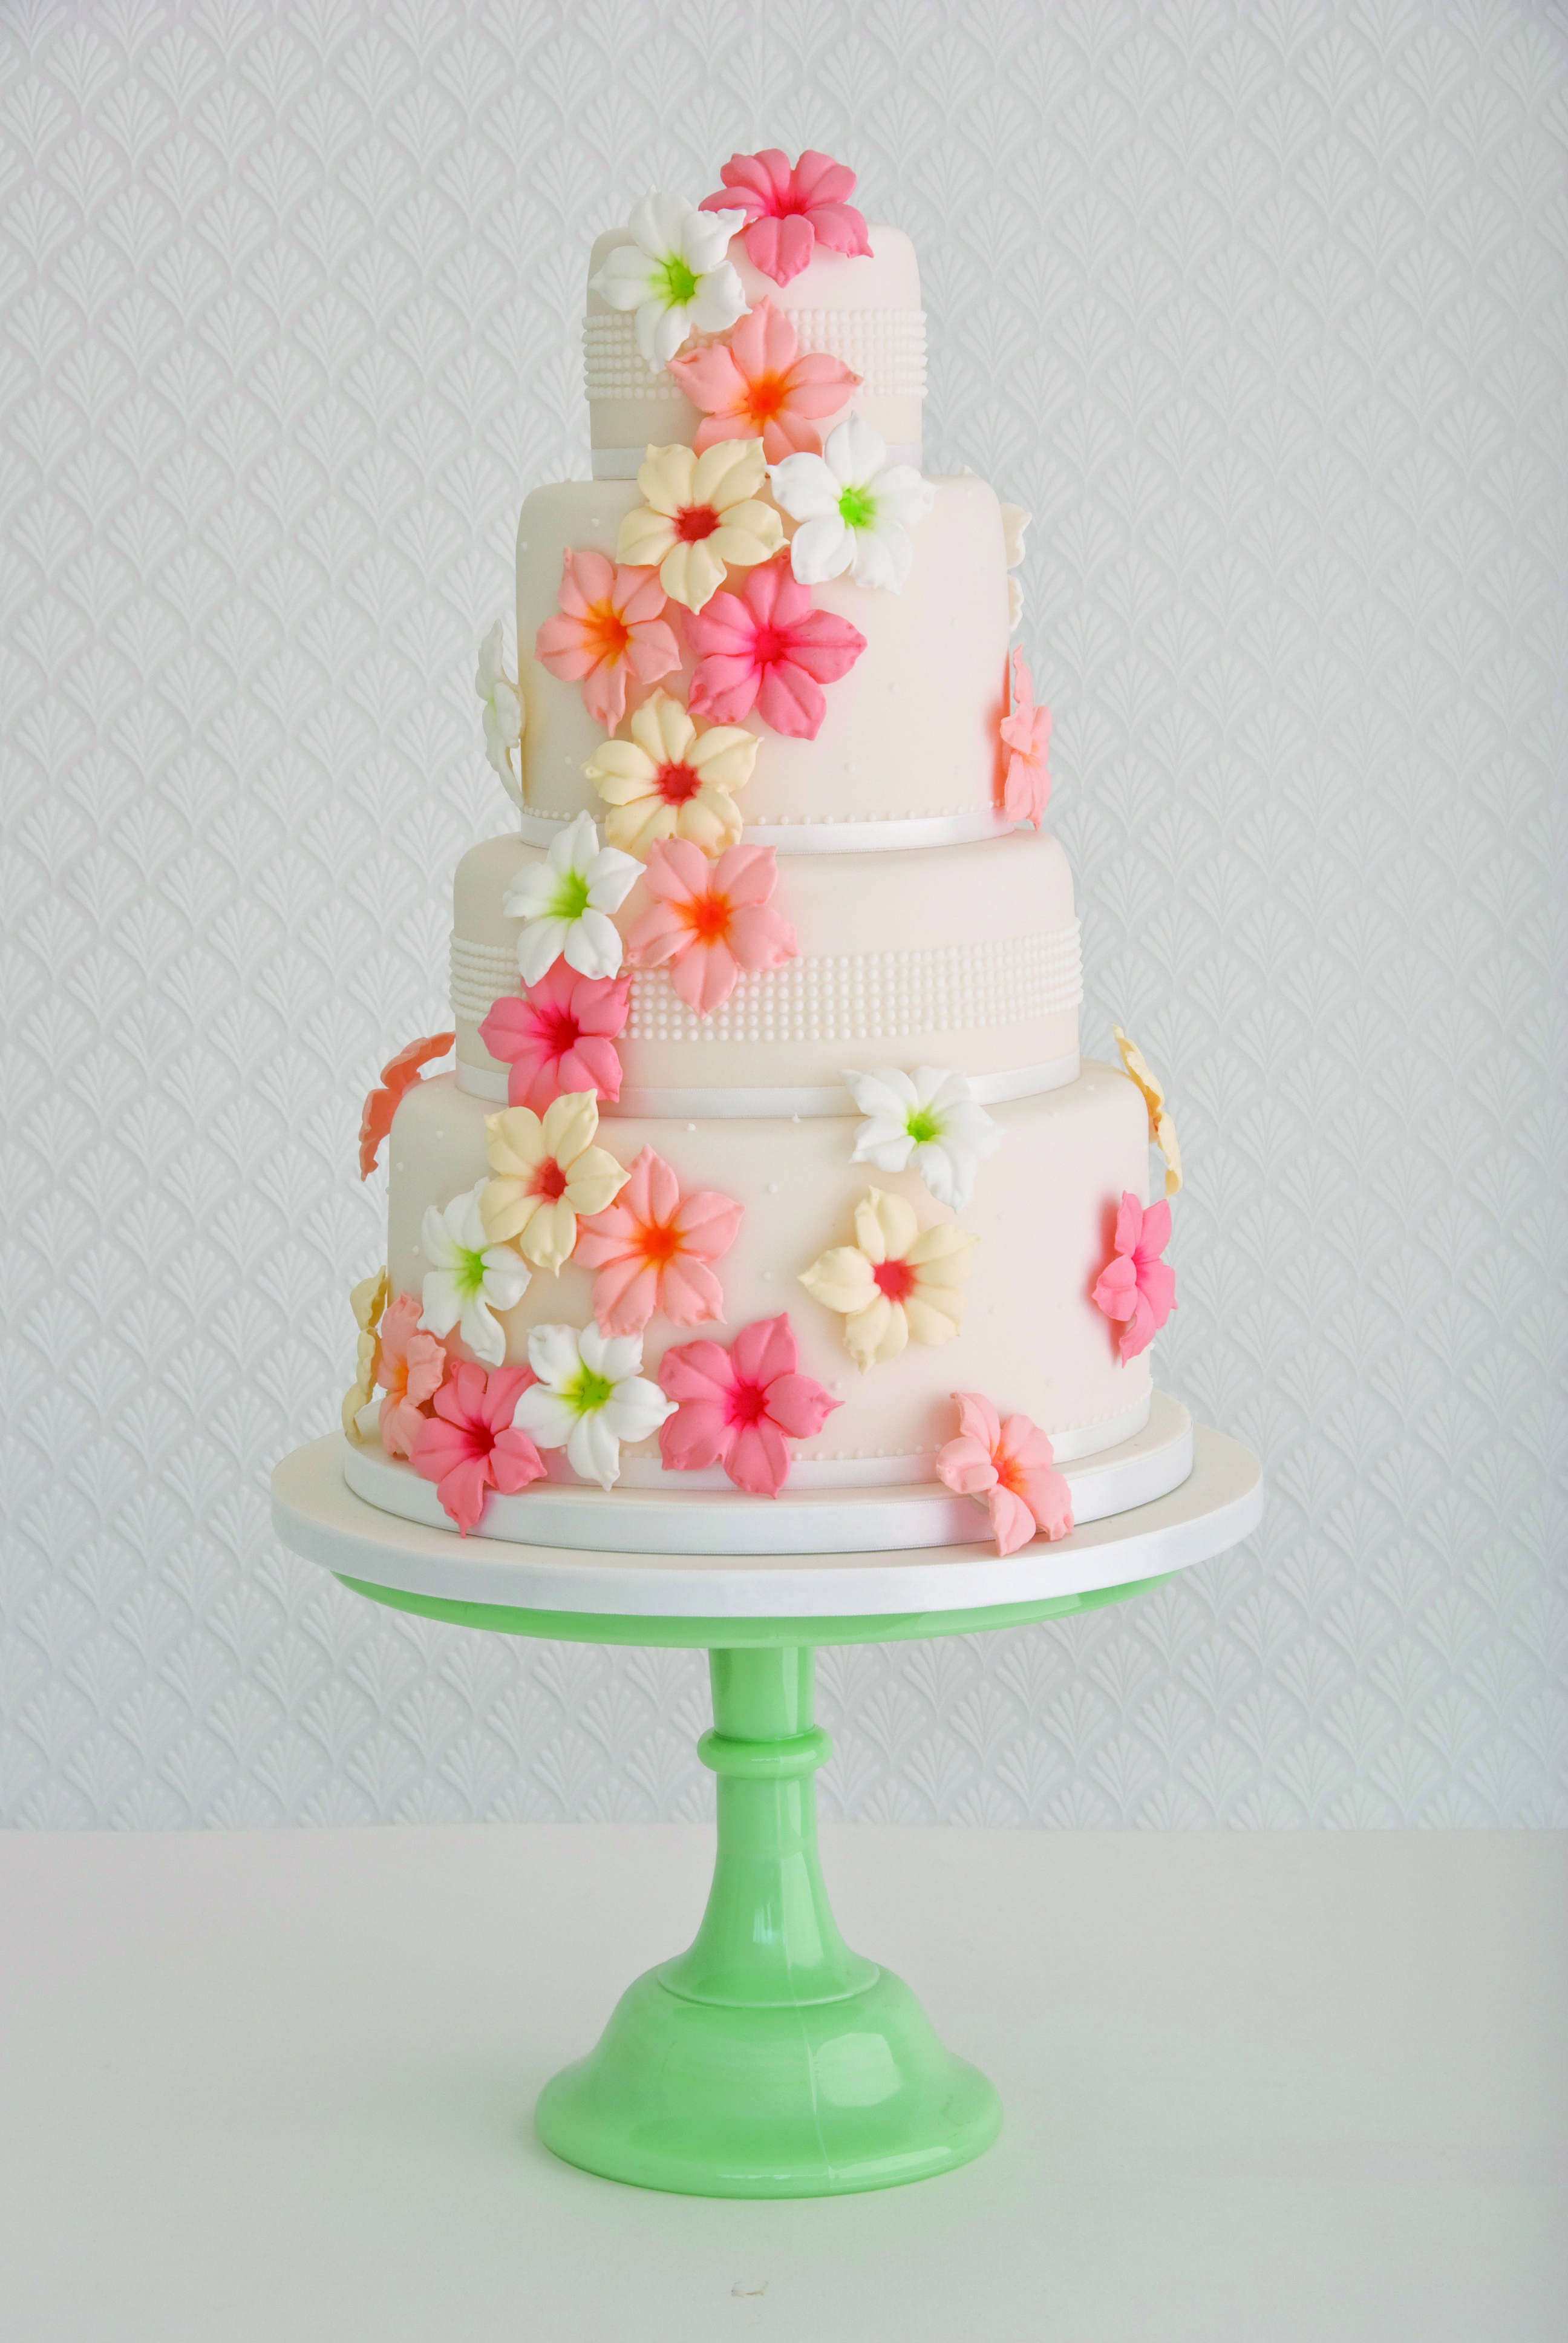 20 Seriously Unique Wedding Cakes Made with Love MODwedding